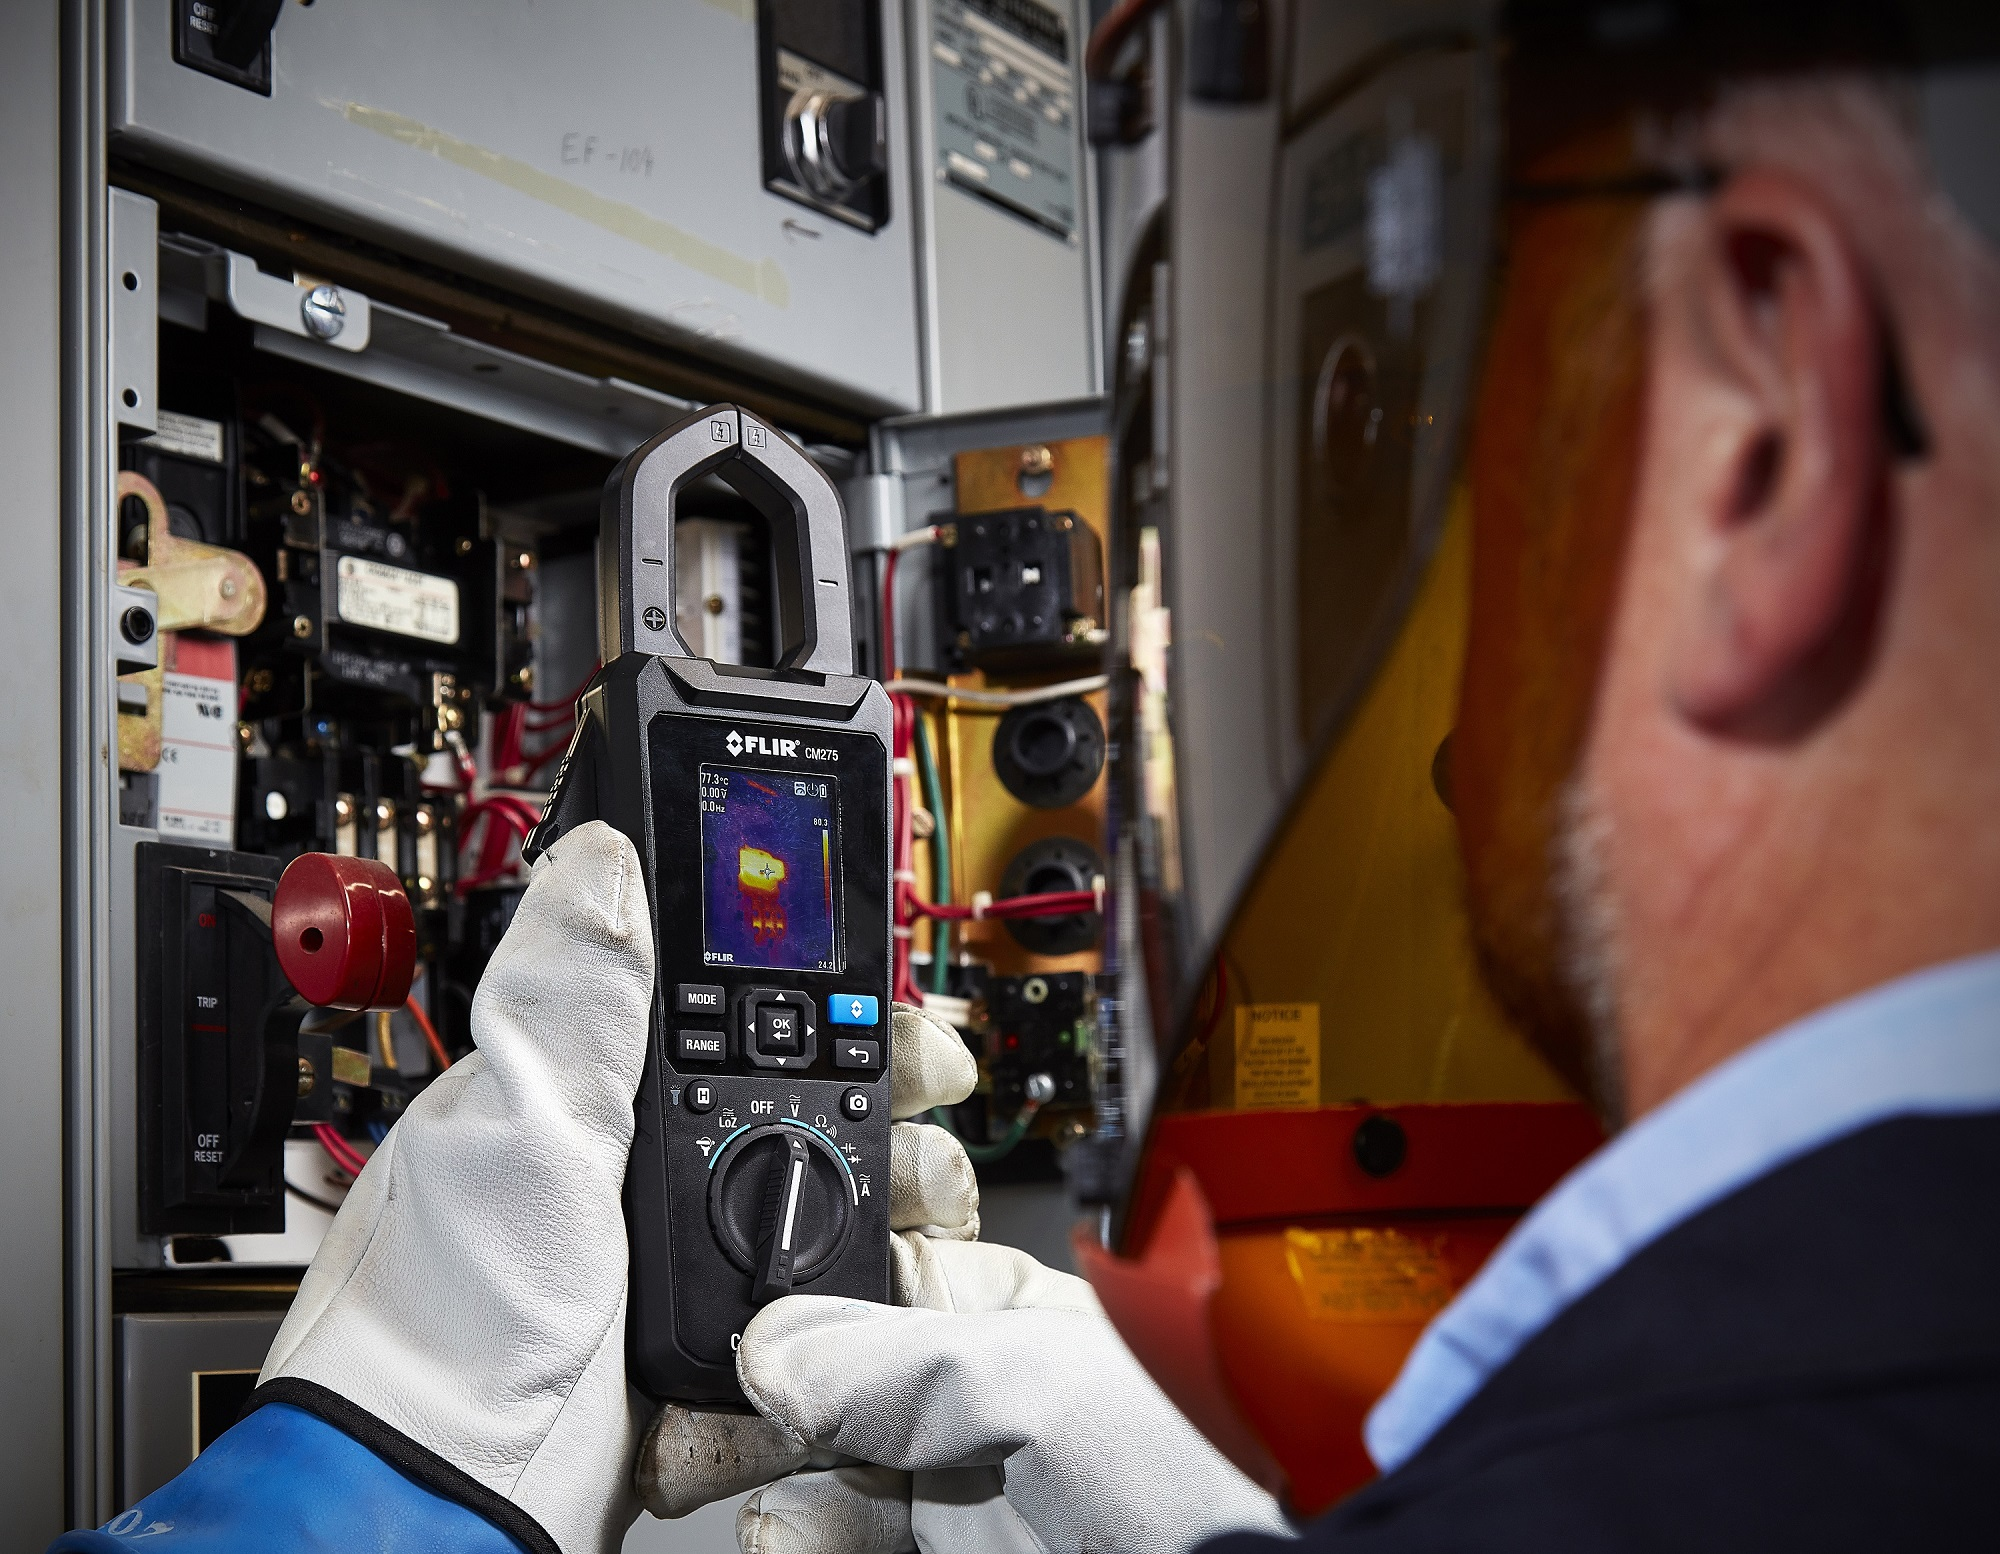 FLIR announces three electrical test and measurement meters with thermal imaging